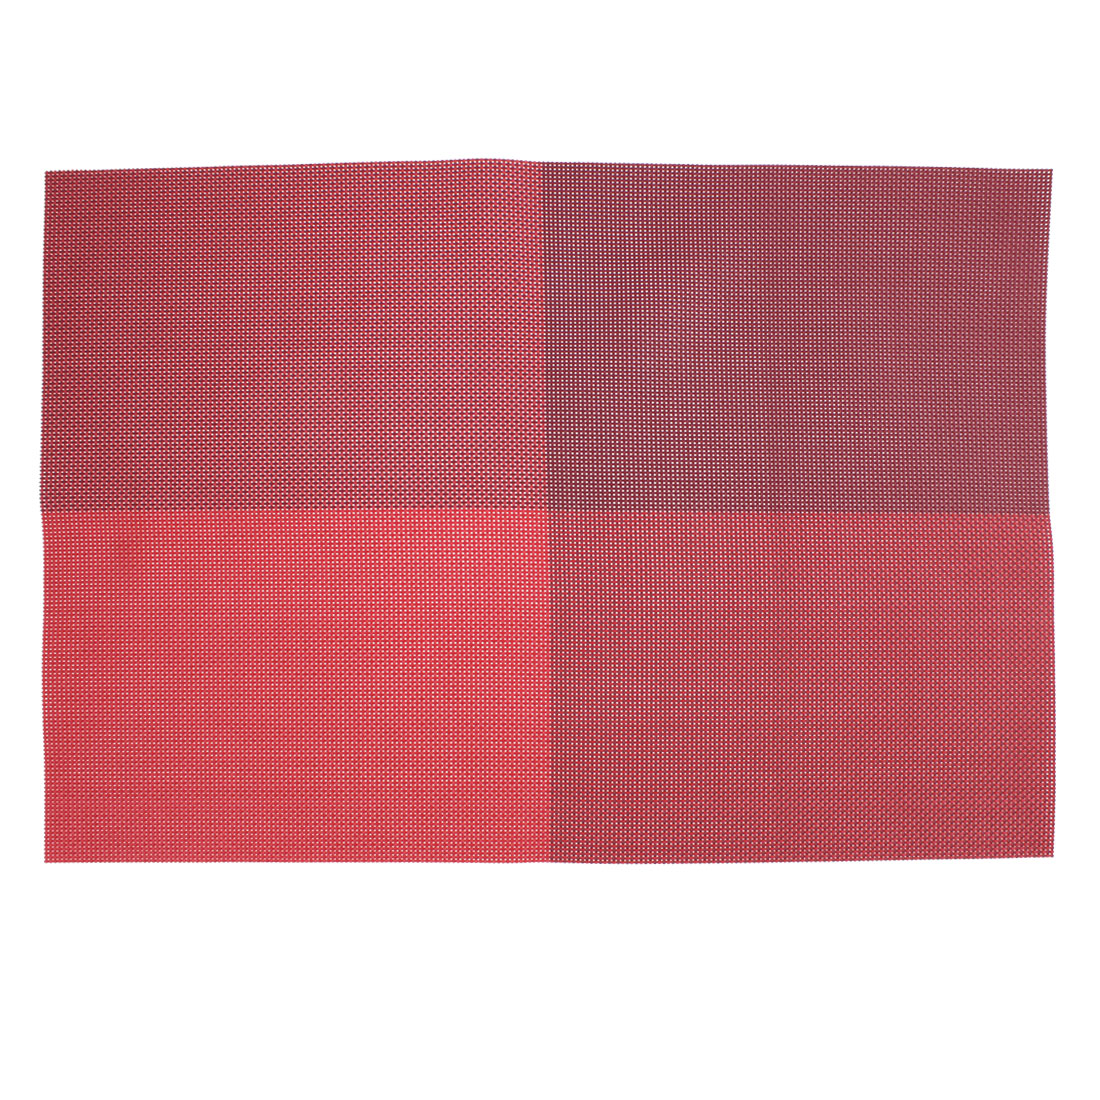 Red PVC Dining Table Placemat Weave Woven Mats Coaster